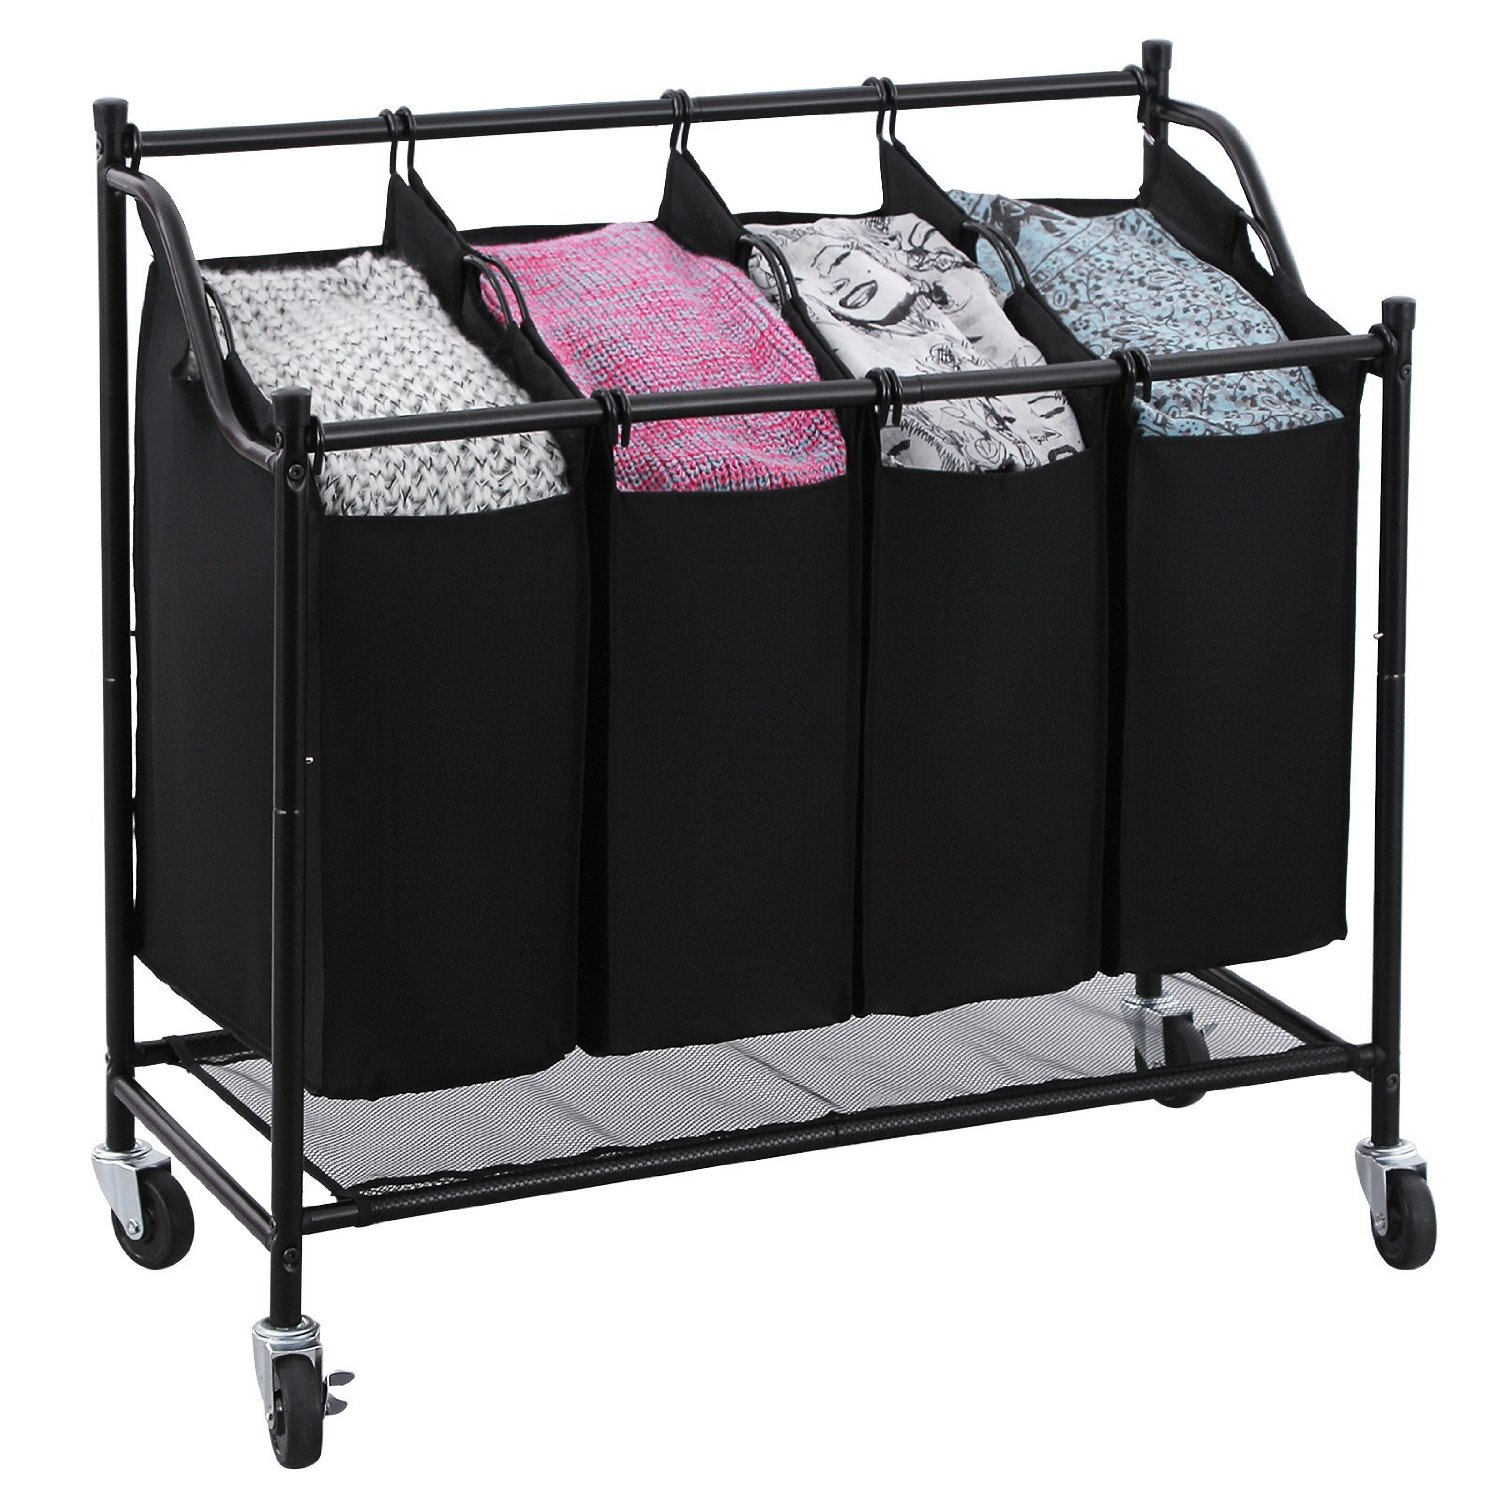 Top 10 Best Laundry Hampers in 2020 Reviews